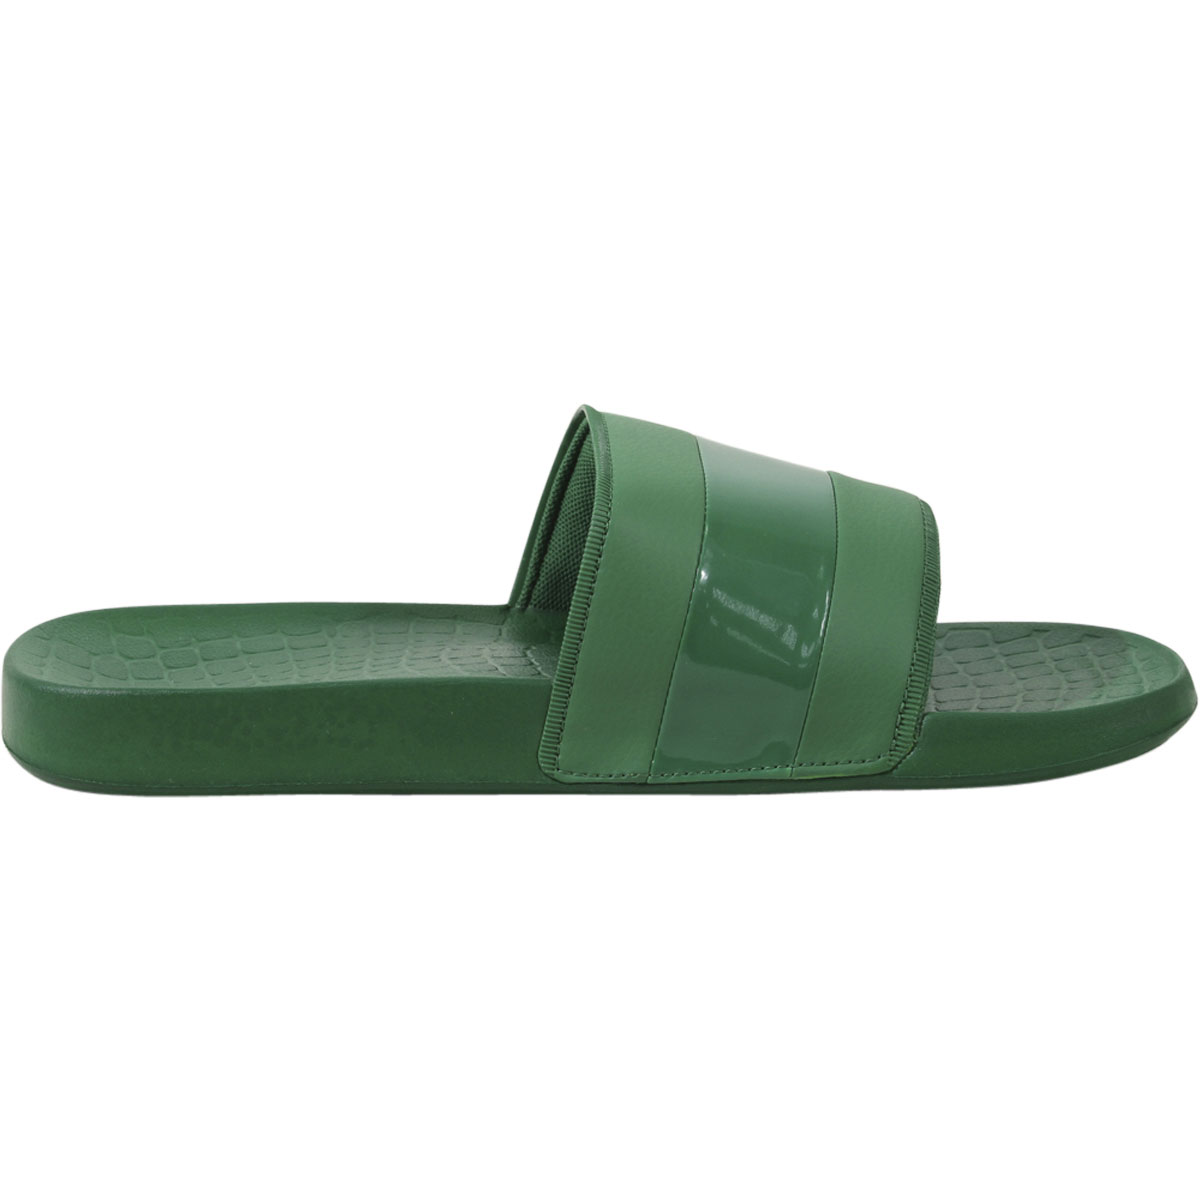 e844d54cd0ea Lacoste Men s Fraisier-118 Logo Slides Sandals Shoes